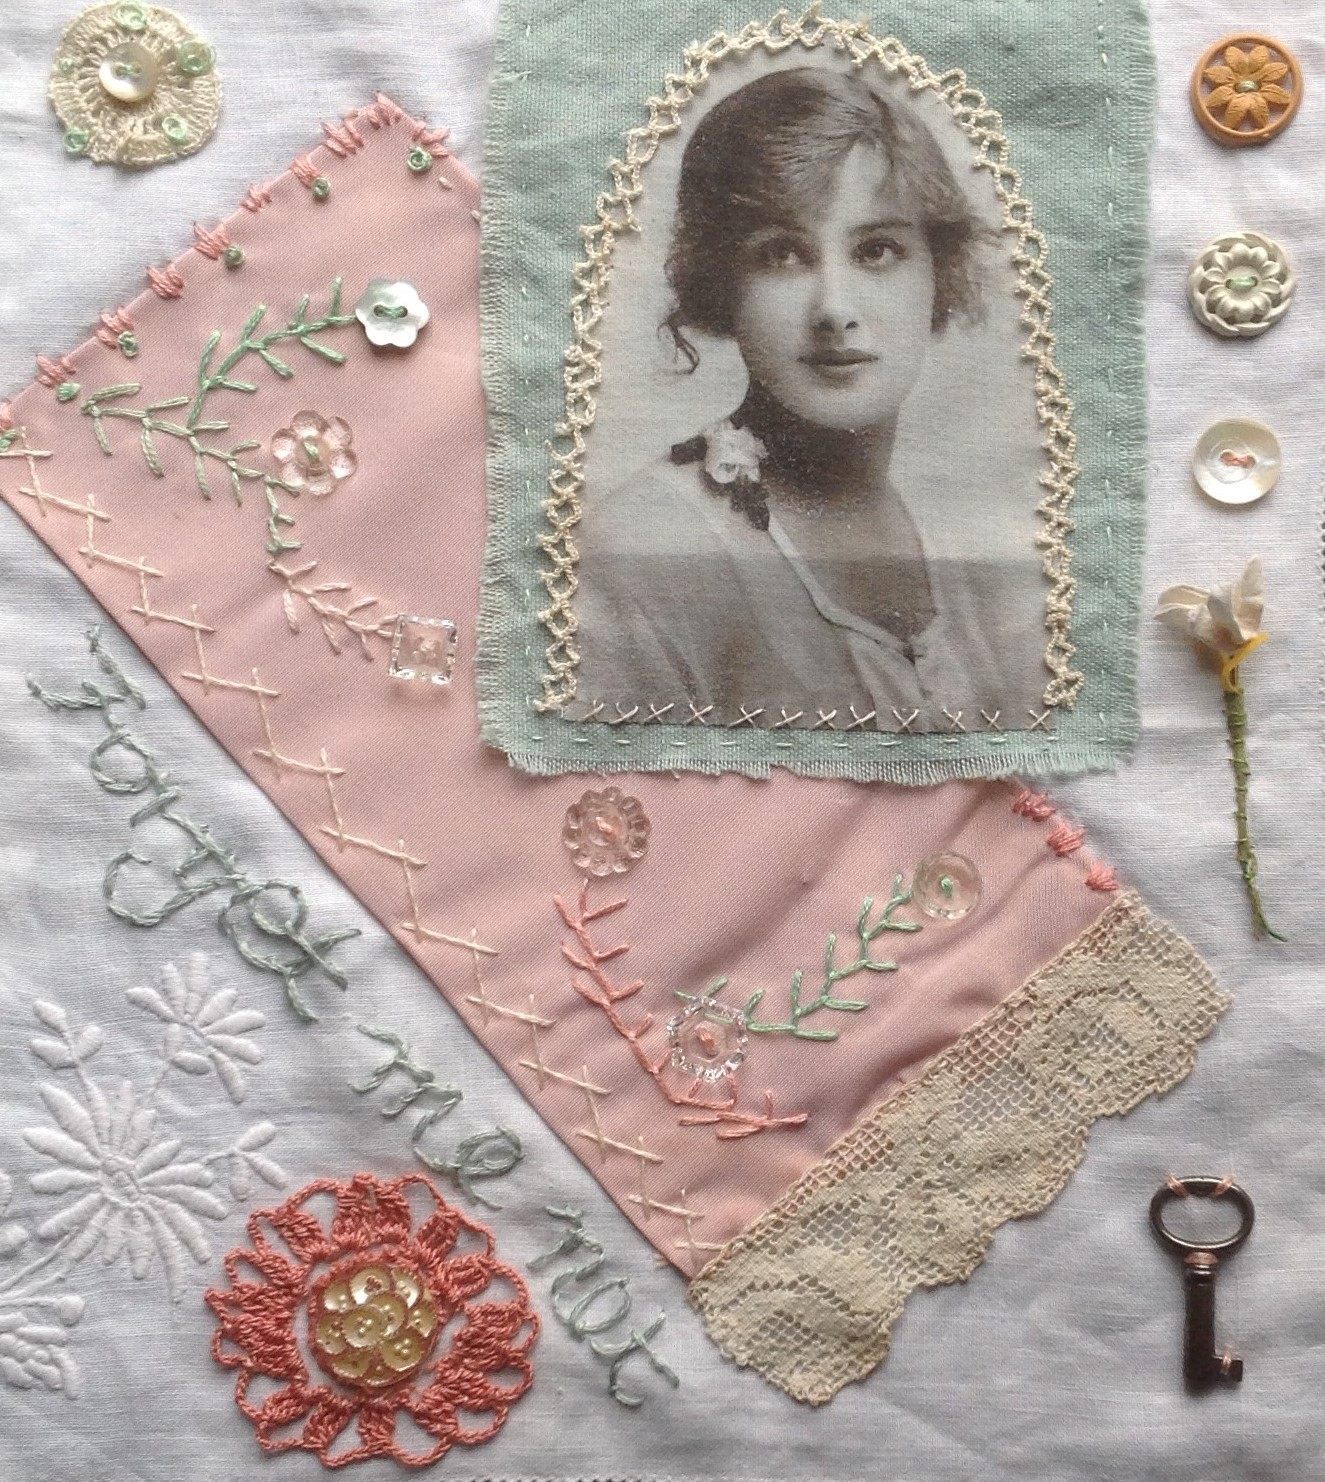 Vintage photographs and embroidery combined